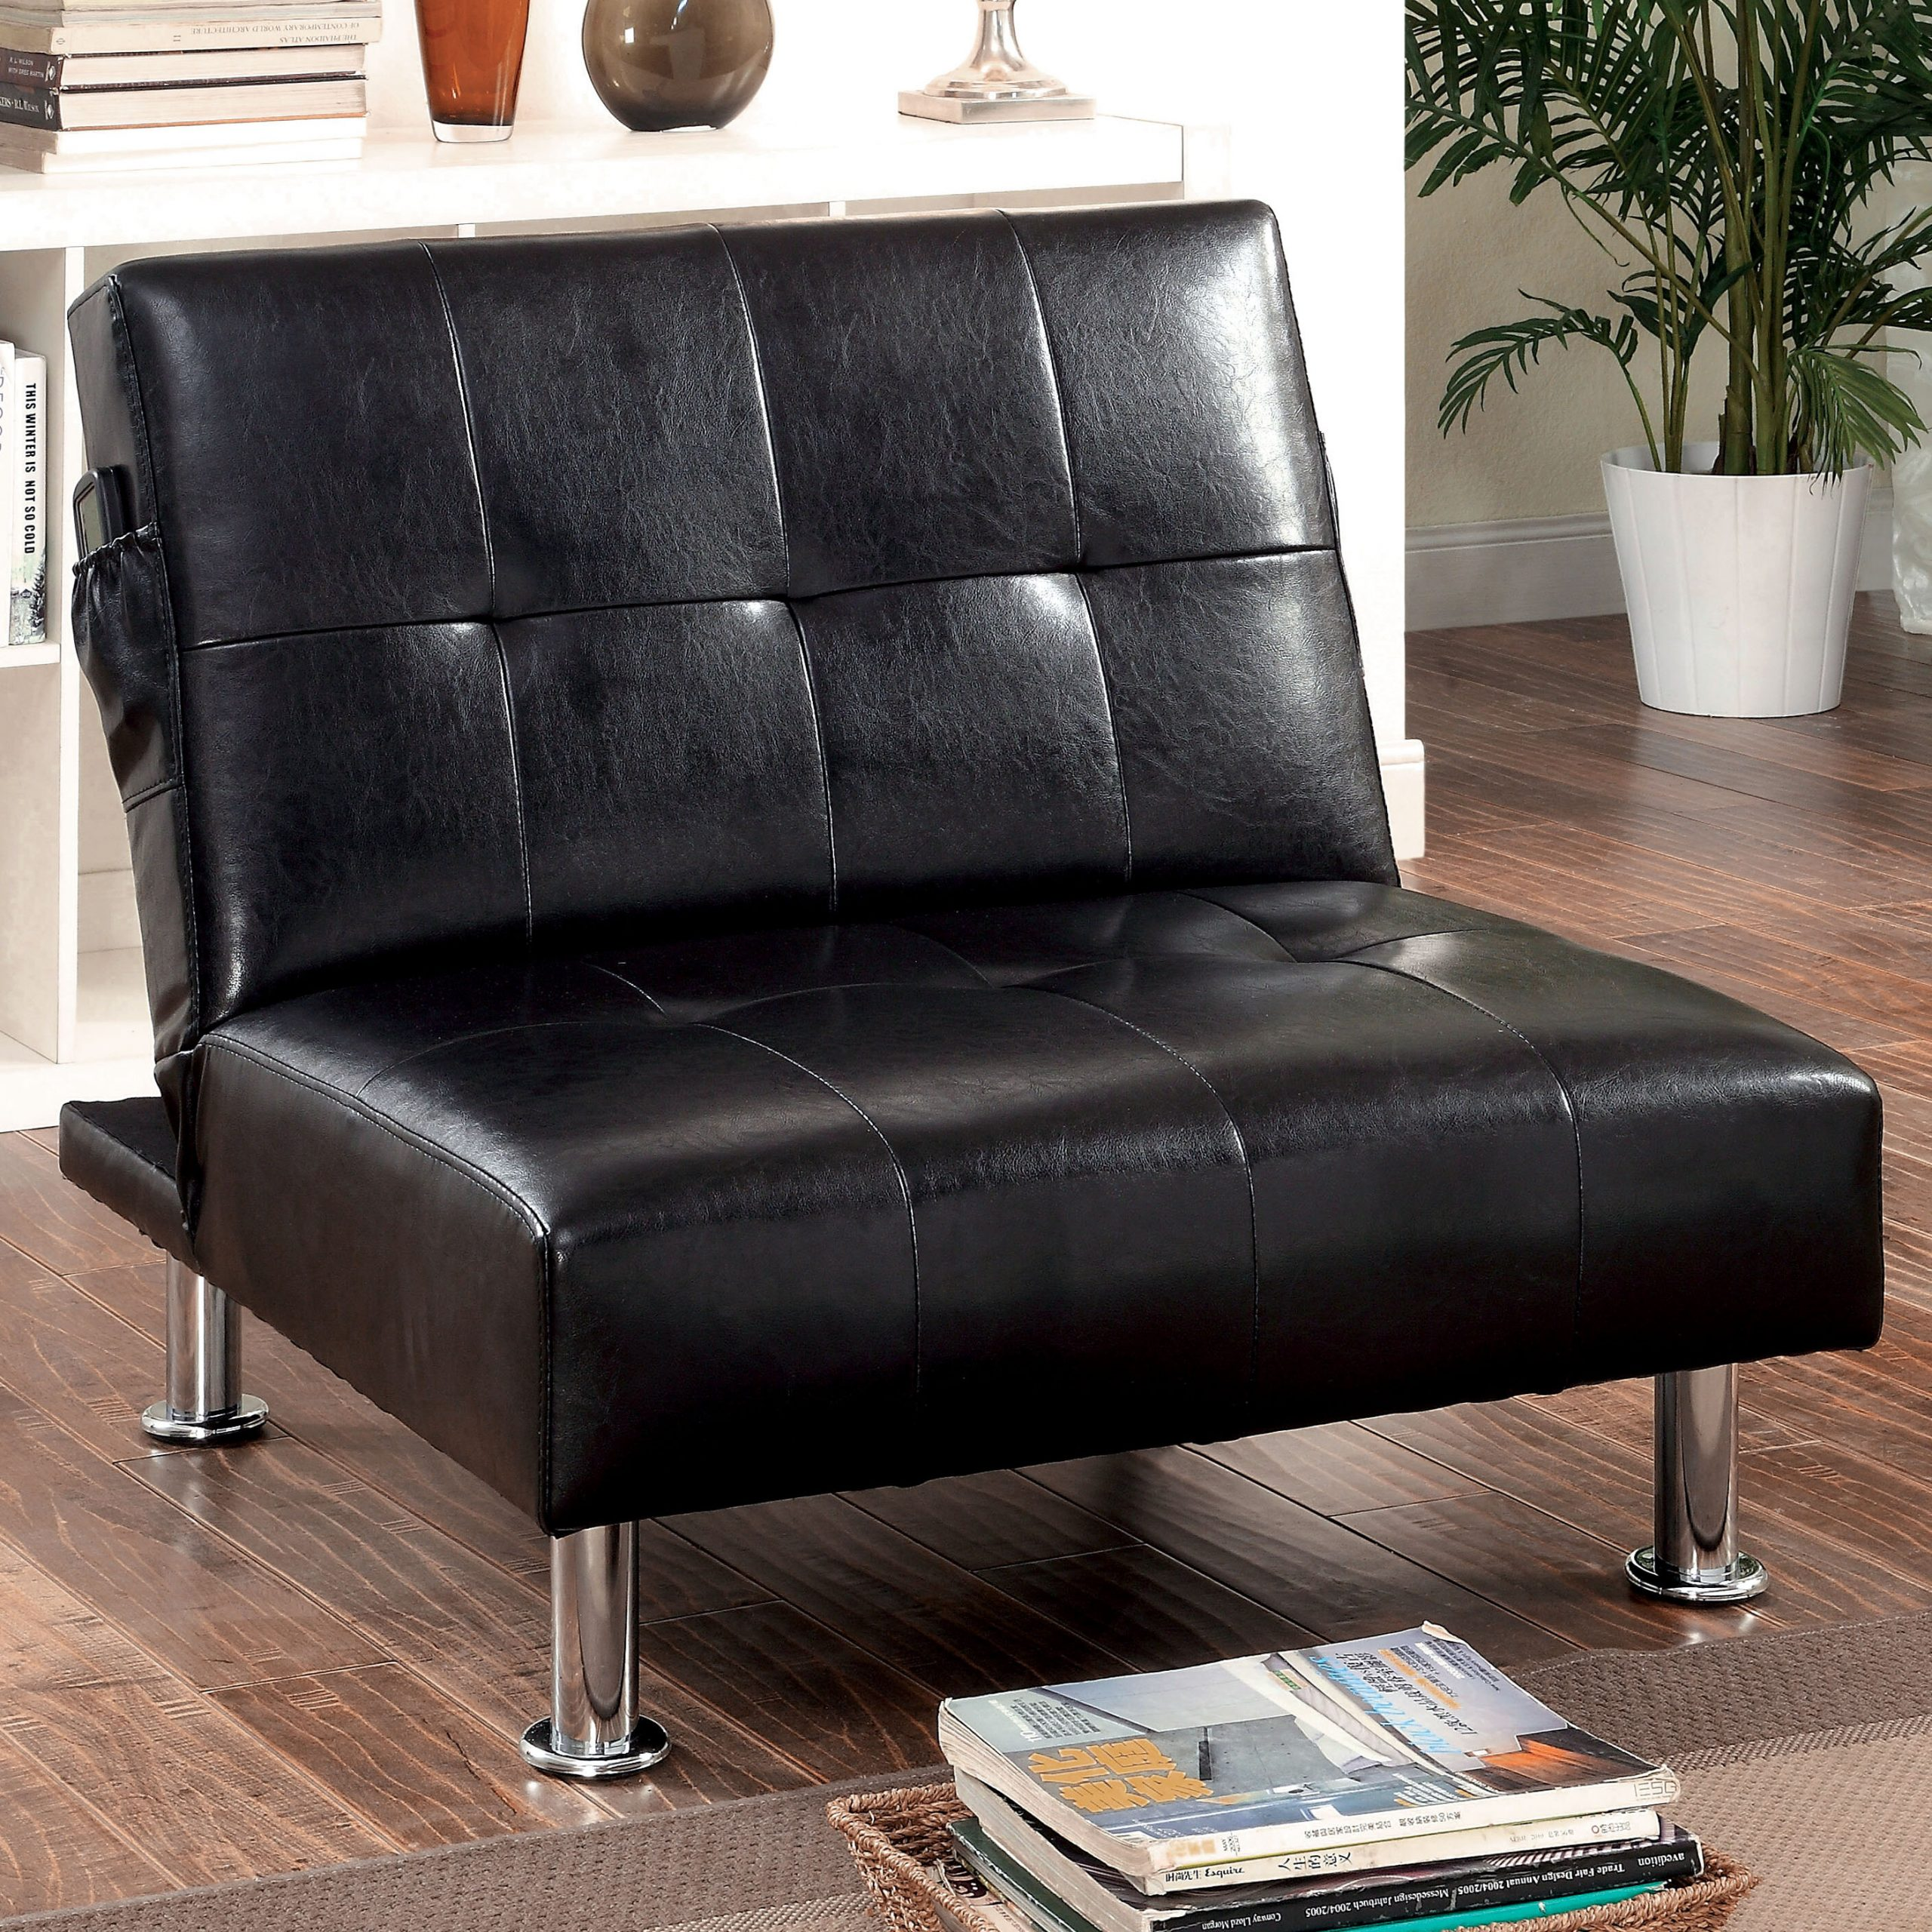 Featured Image of Perz Tufted Faux Leather Convertible Chairs